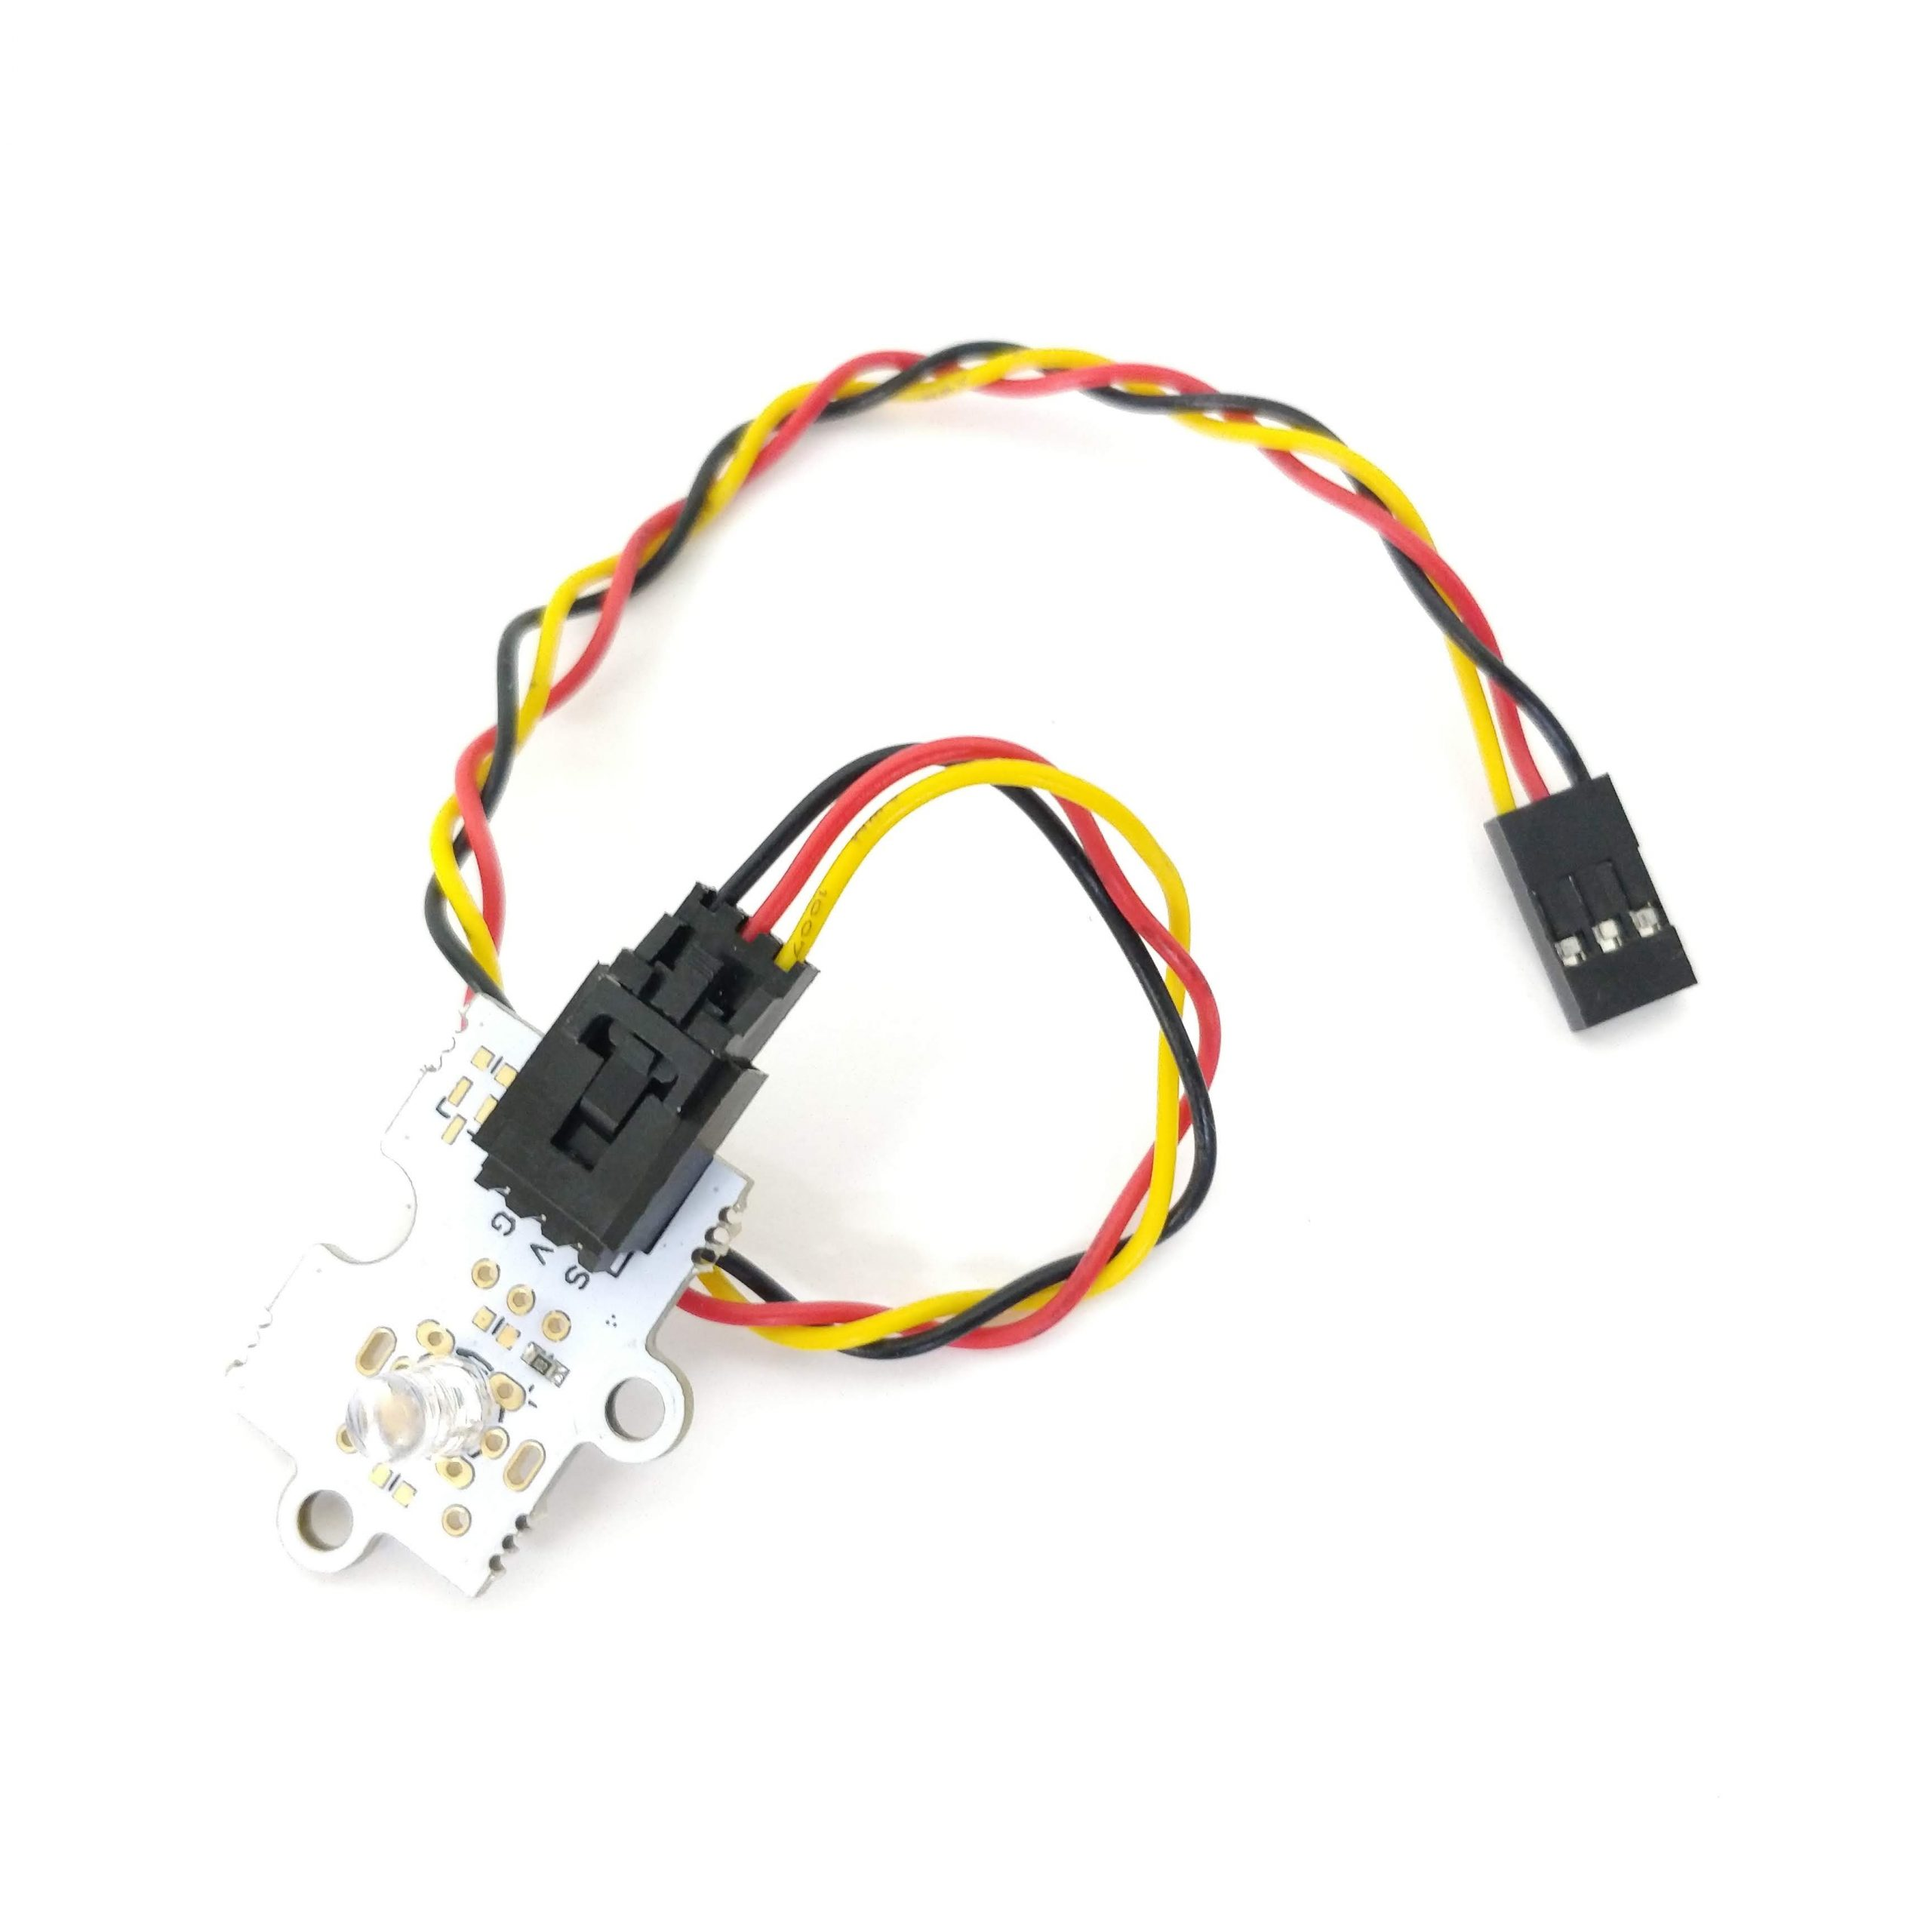 Imatge led 5mm eBotics + cable